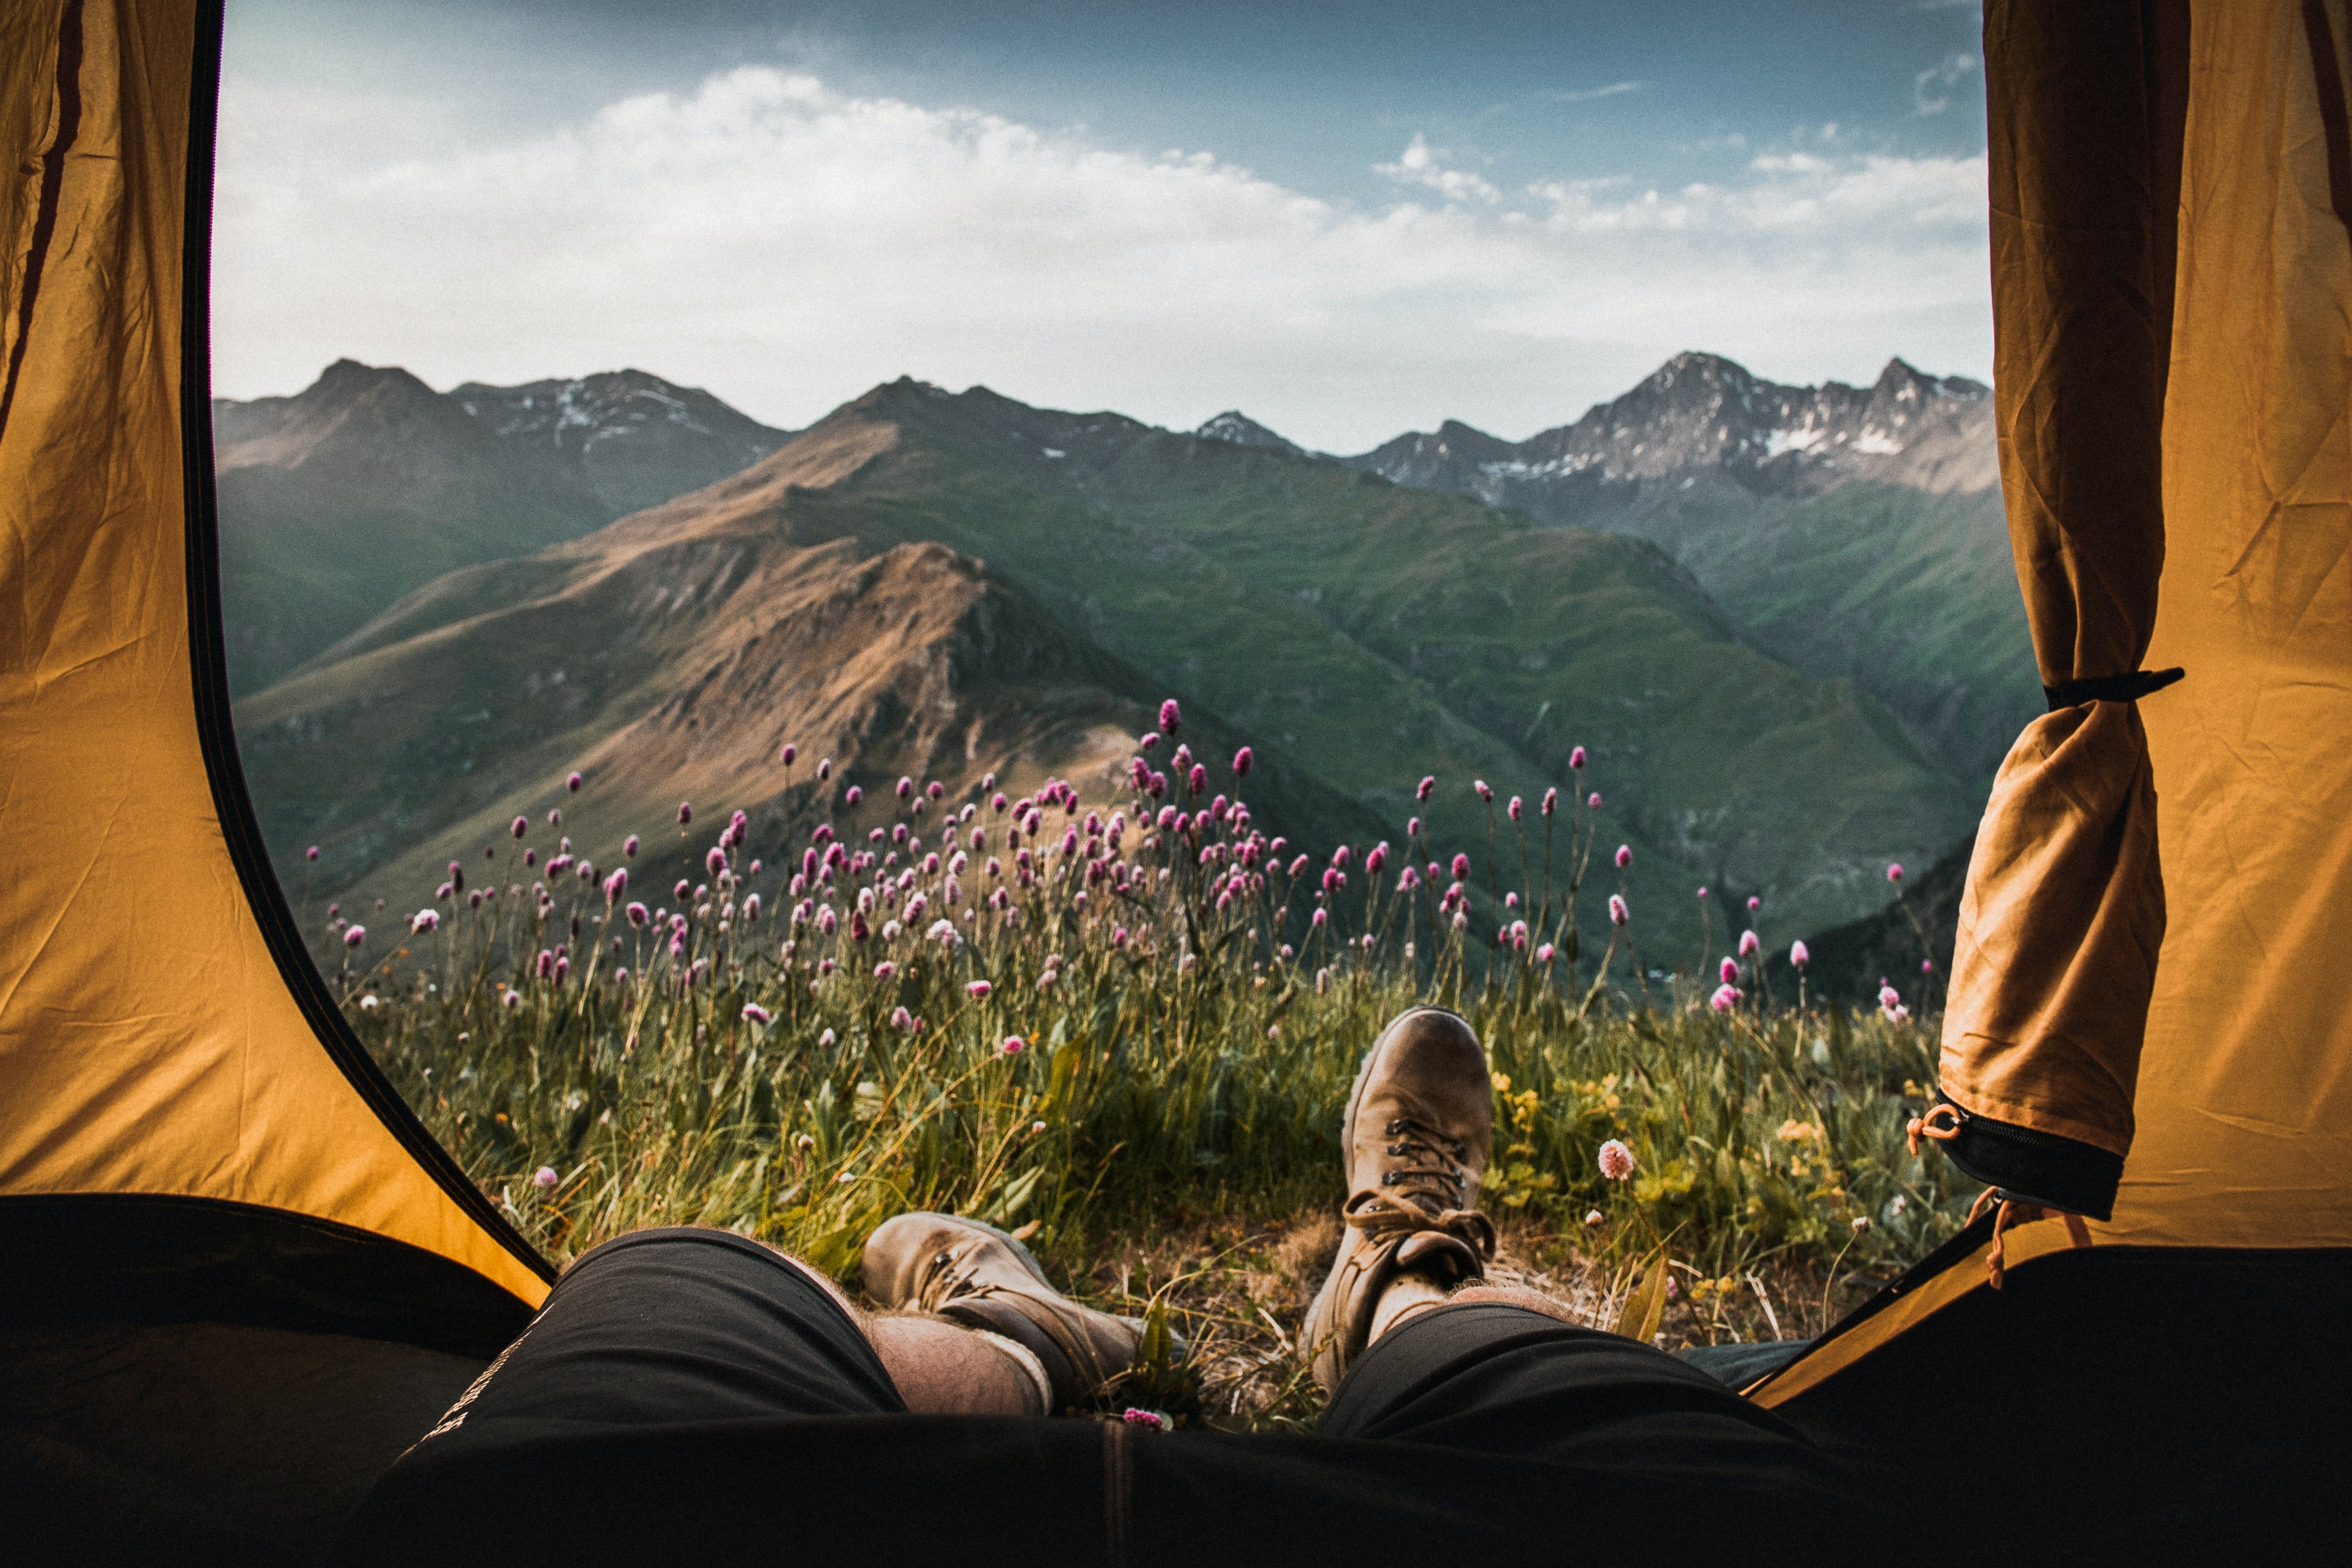 A Beginner's Guide To Sustainable Traveling & Becoming a Responsible Traveler